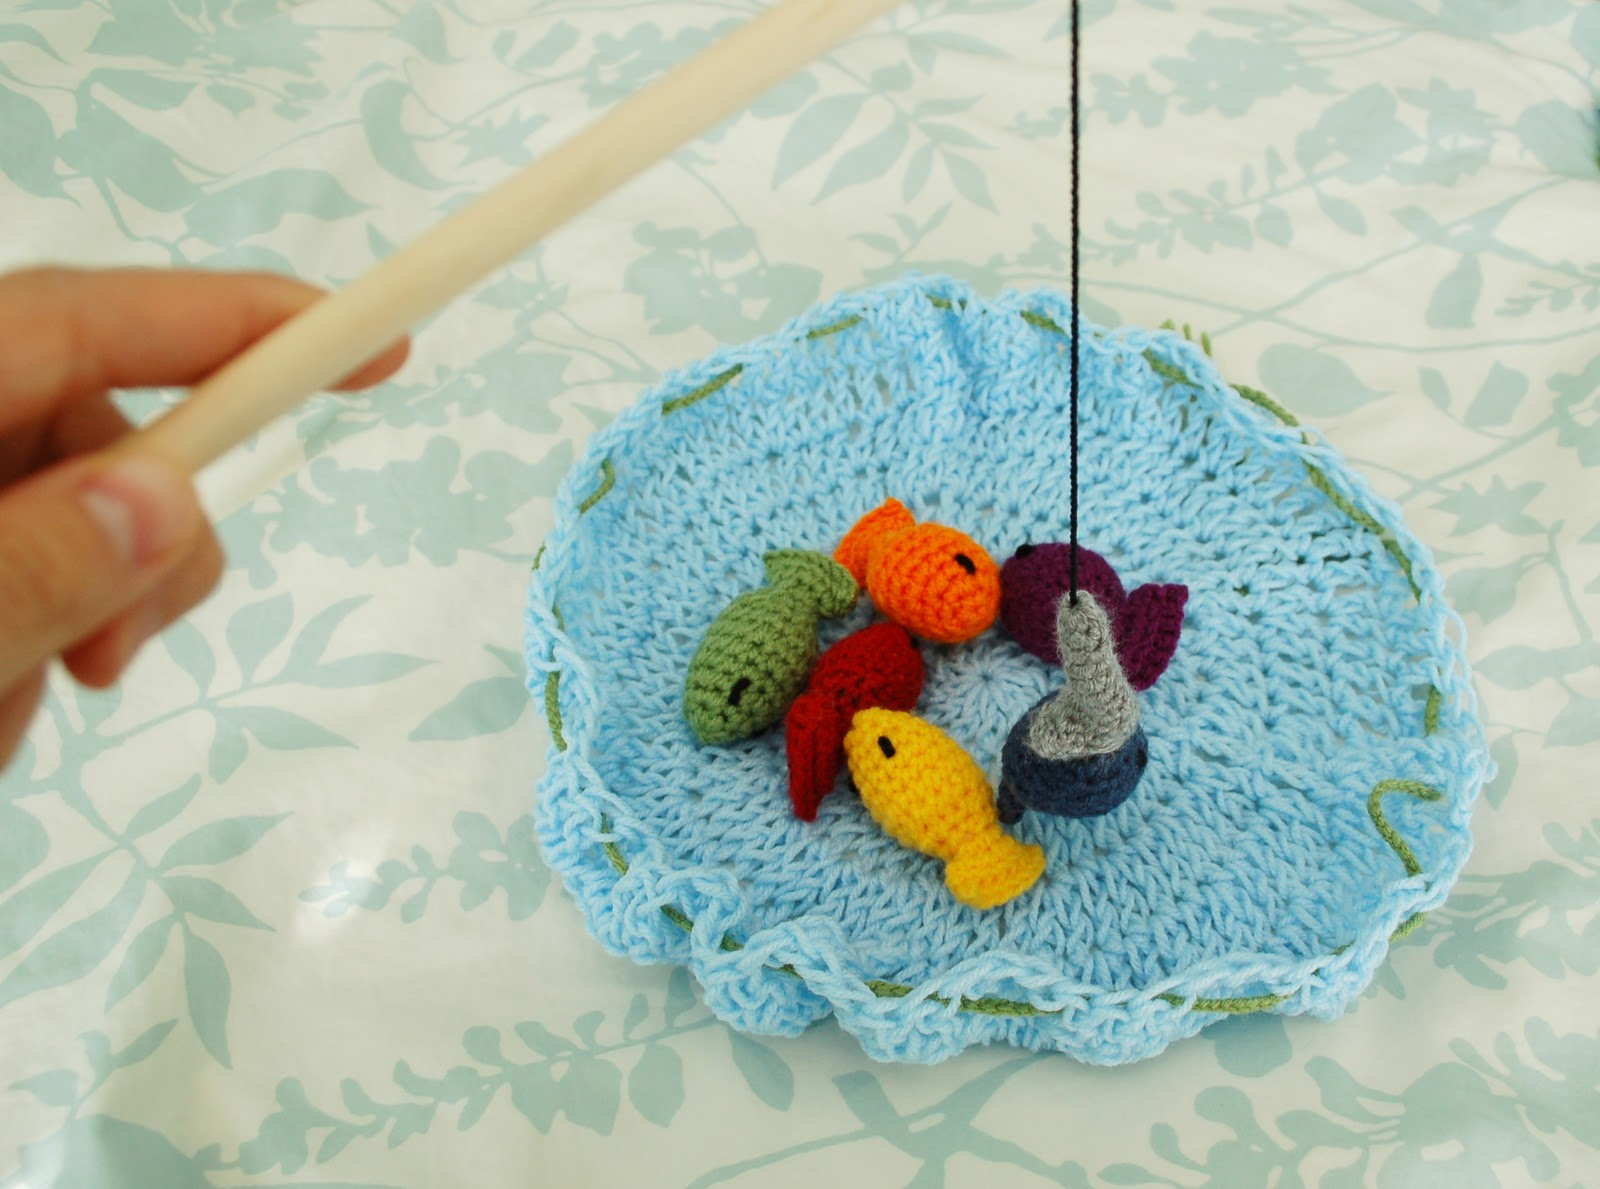 Fishing Game Toy : Alli crafts free pattern fishing game kid s toy